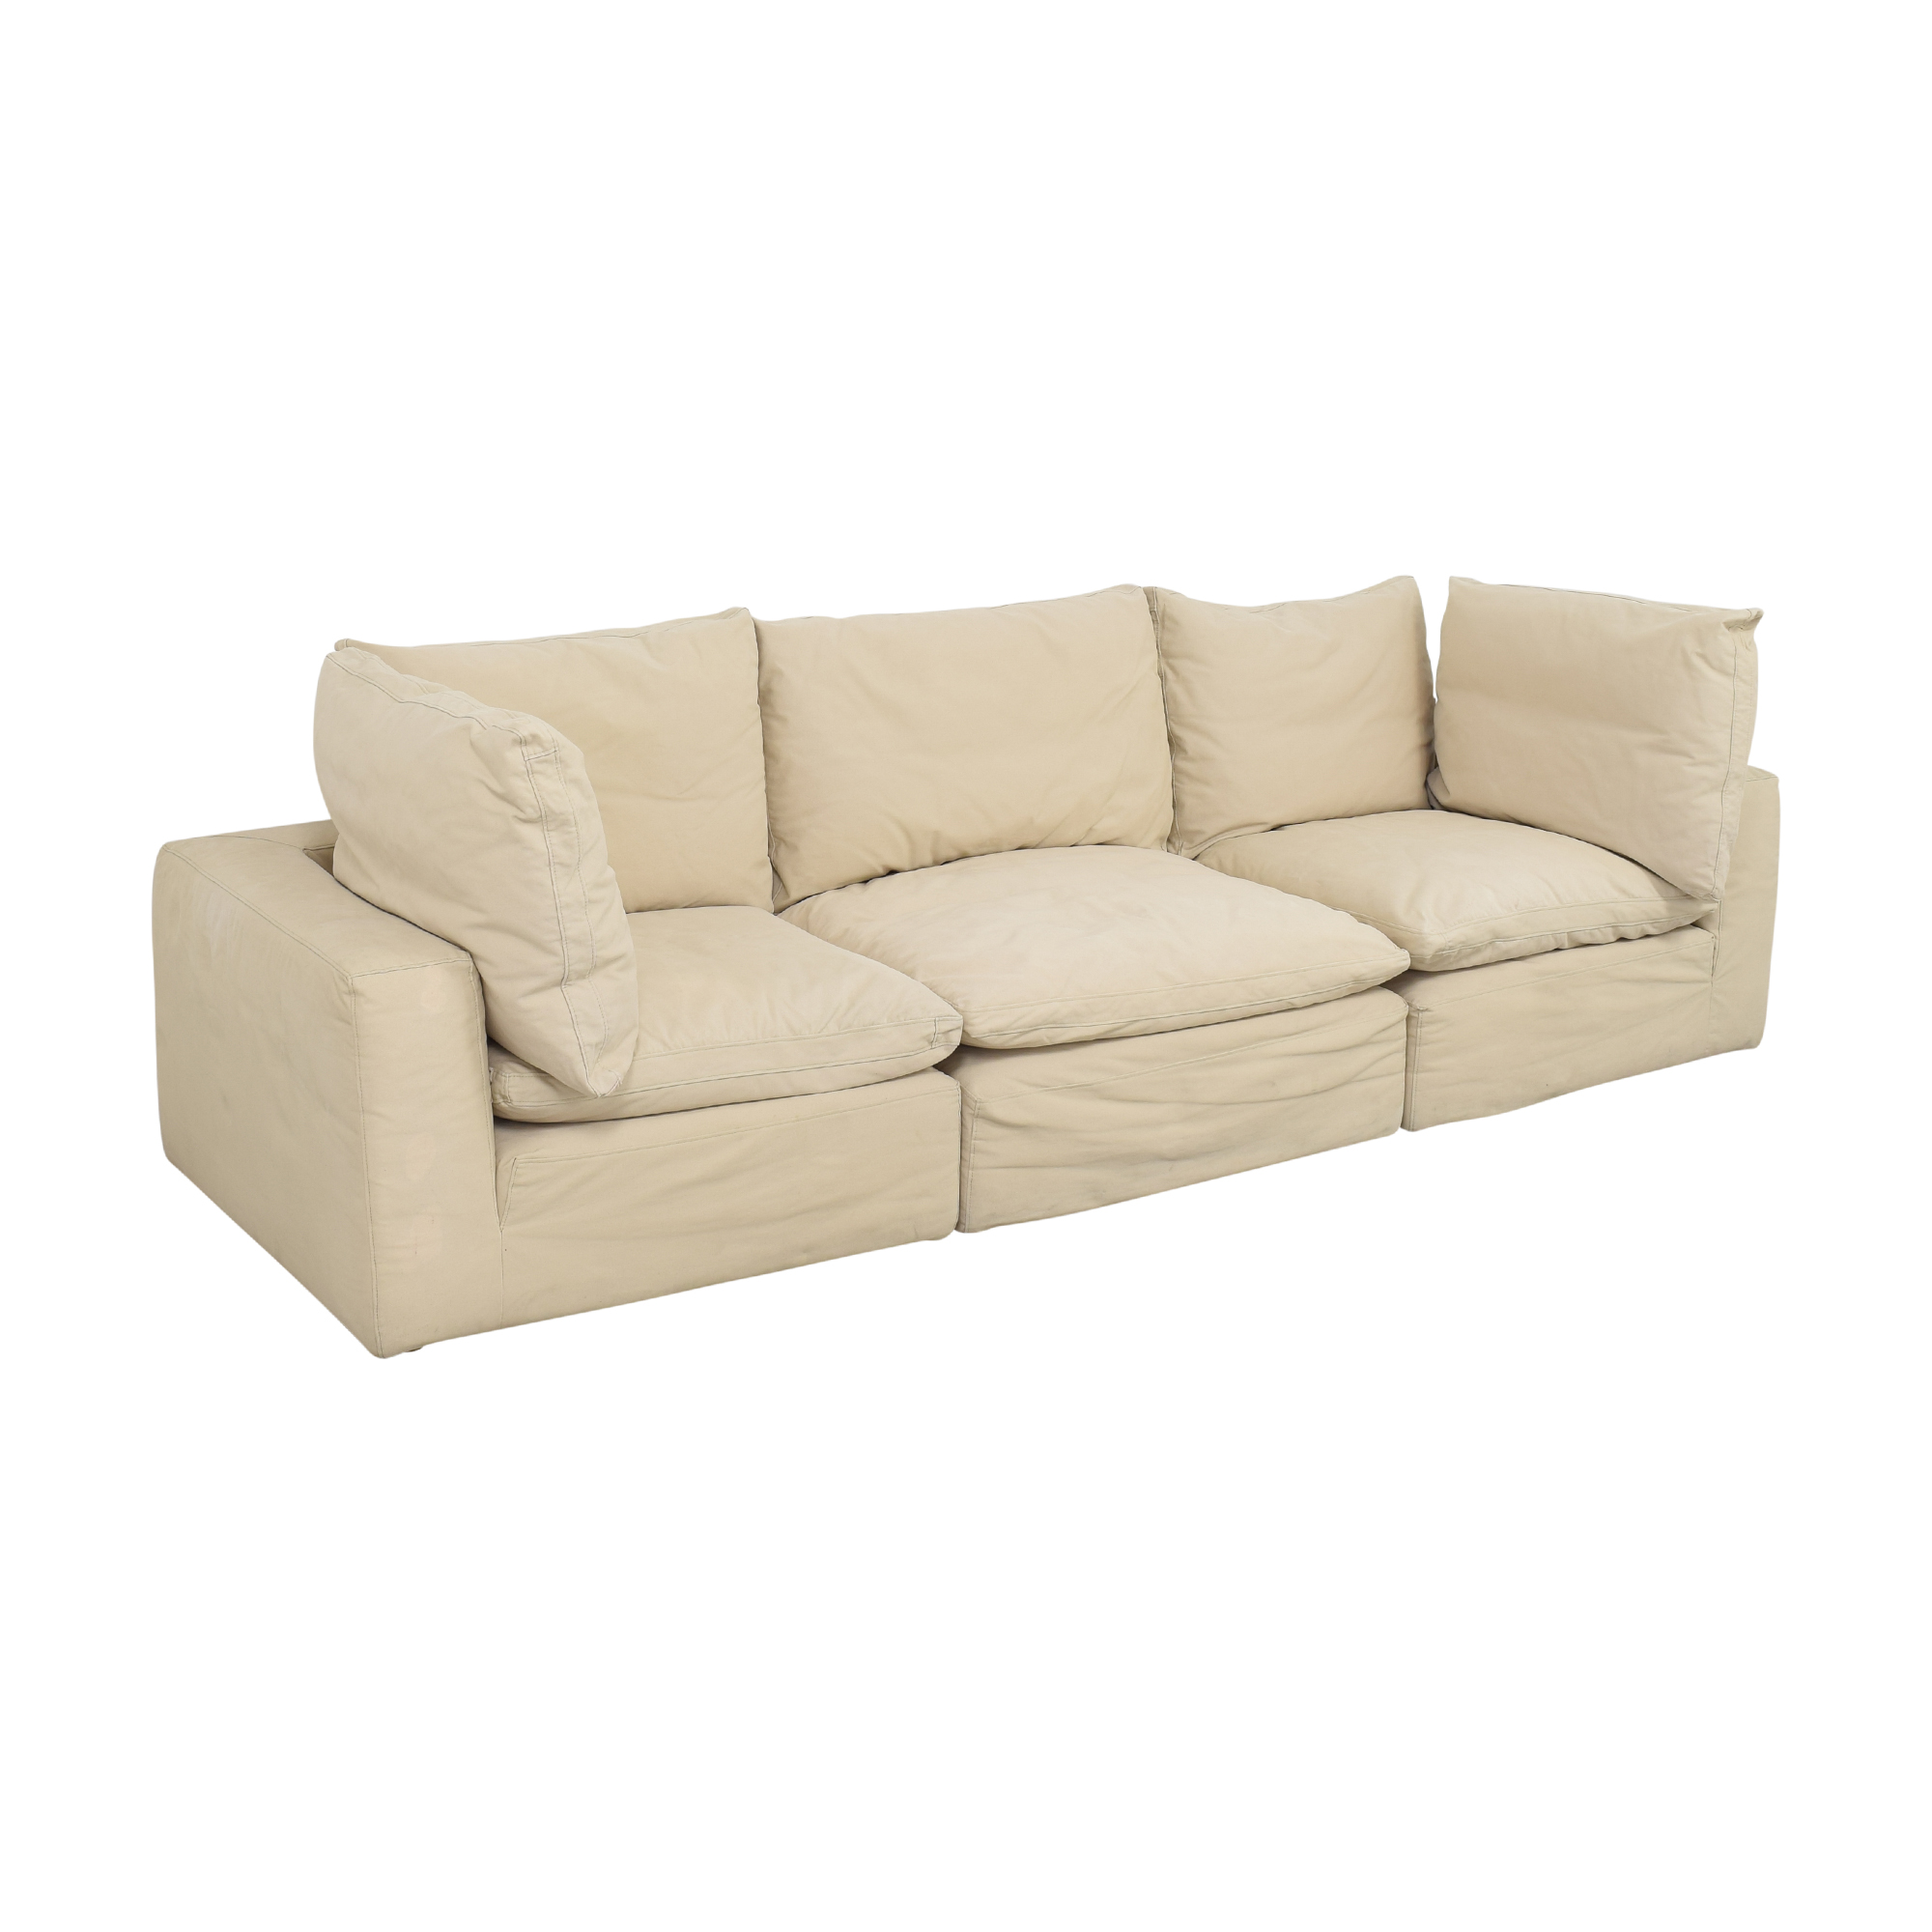 Restoration Hardware Restoration Hardware Cloud Modular Sofa ct